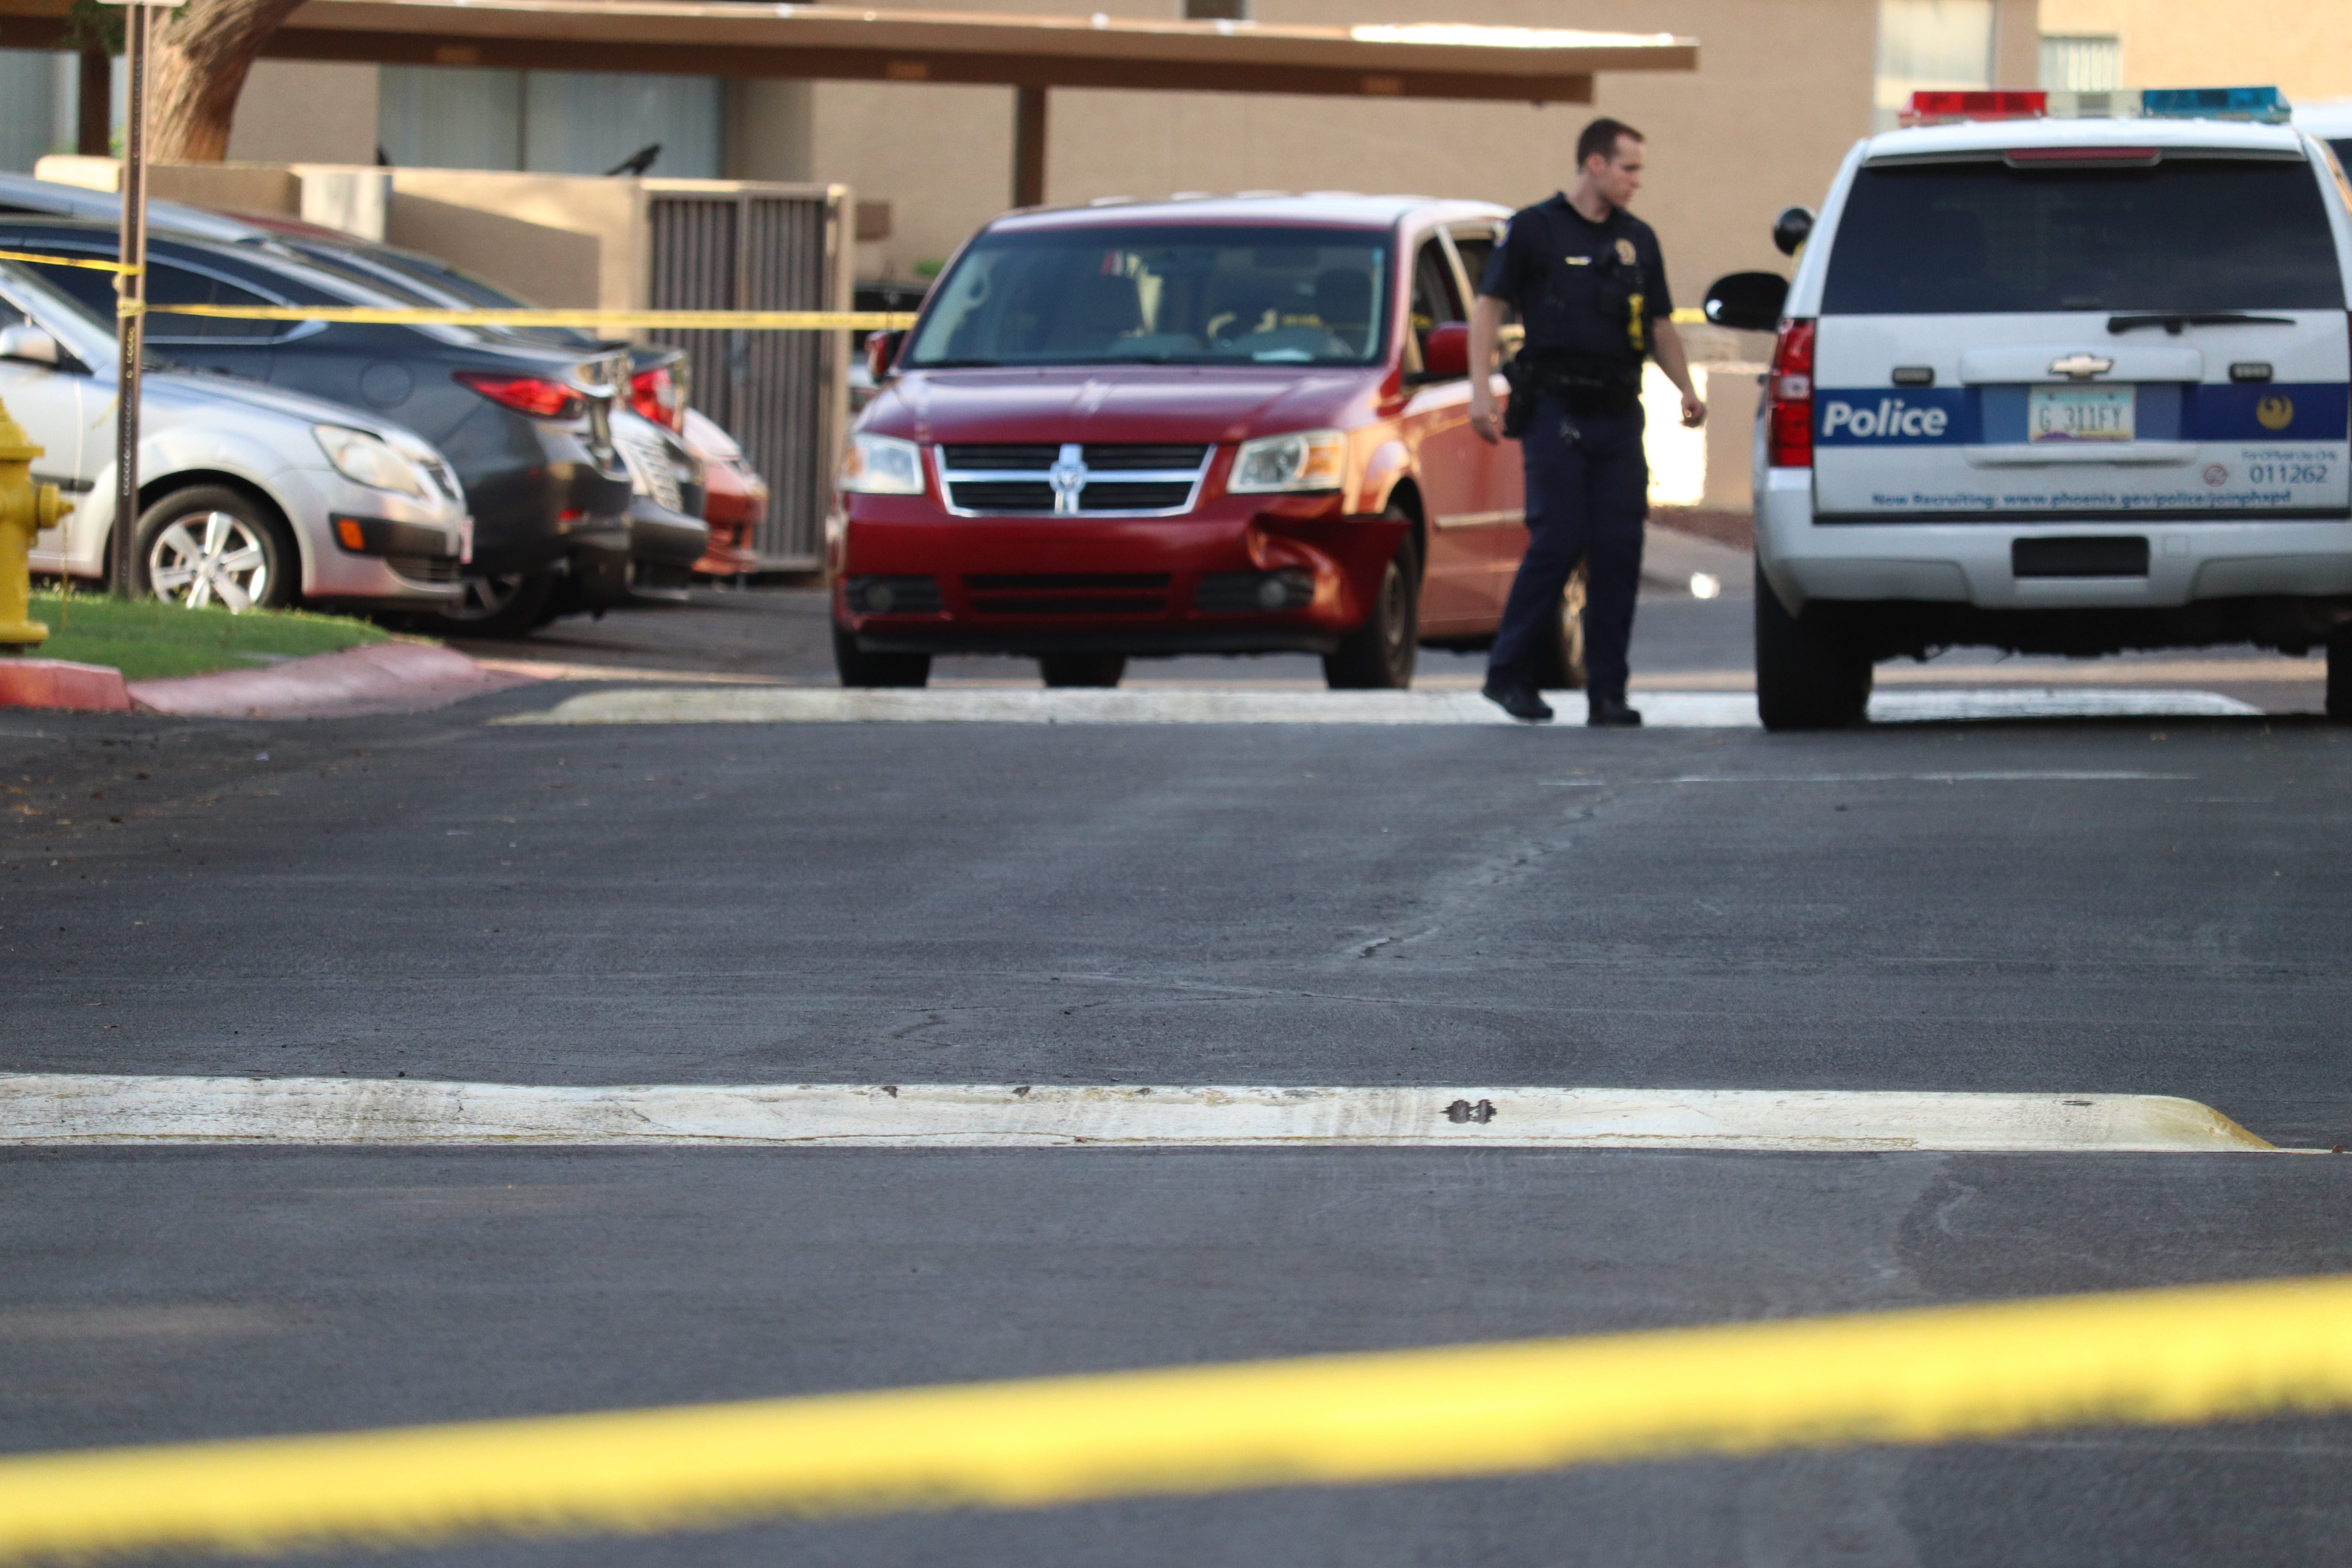 Police chase leads to arrest of adult, 7 juveniles in convenience store armed robberies | AZ Central